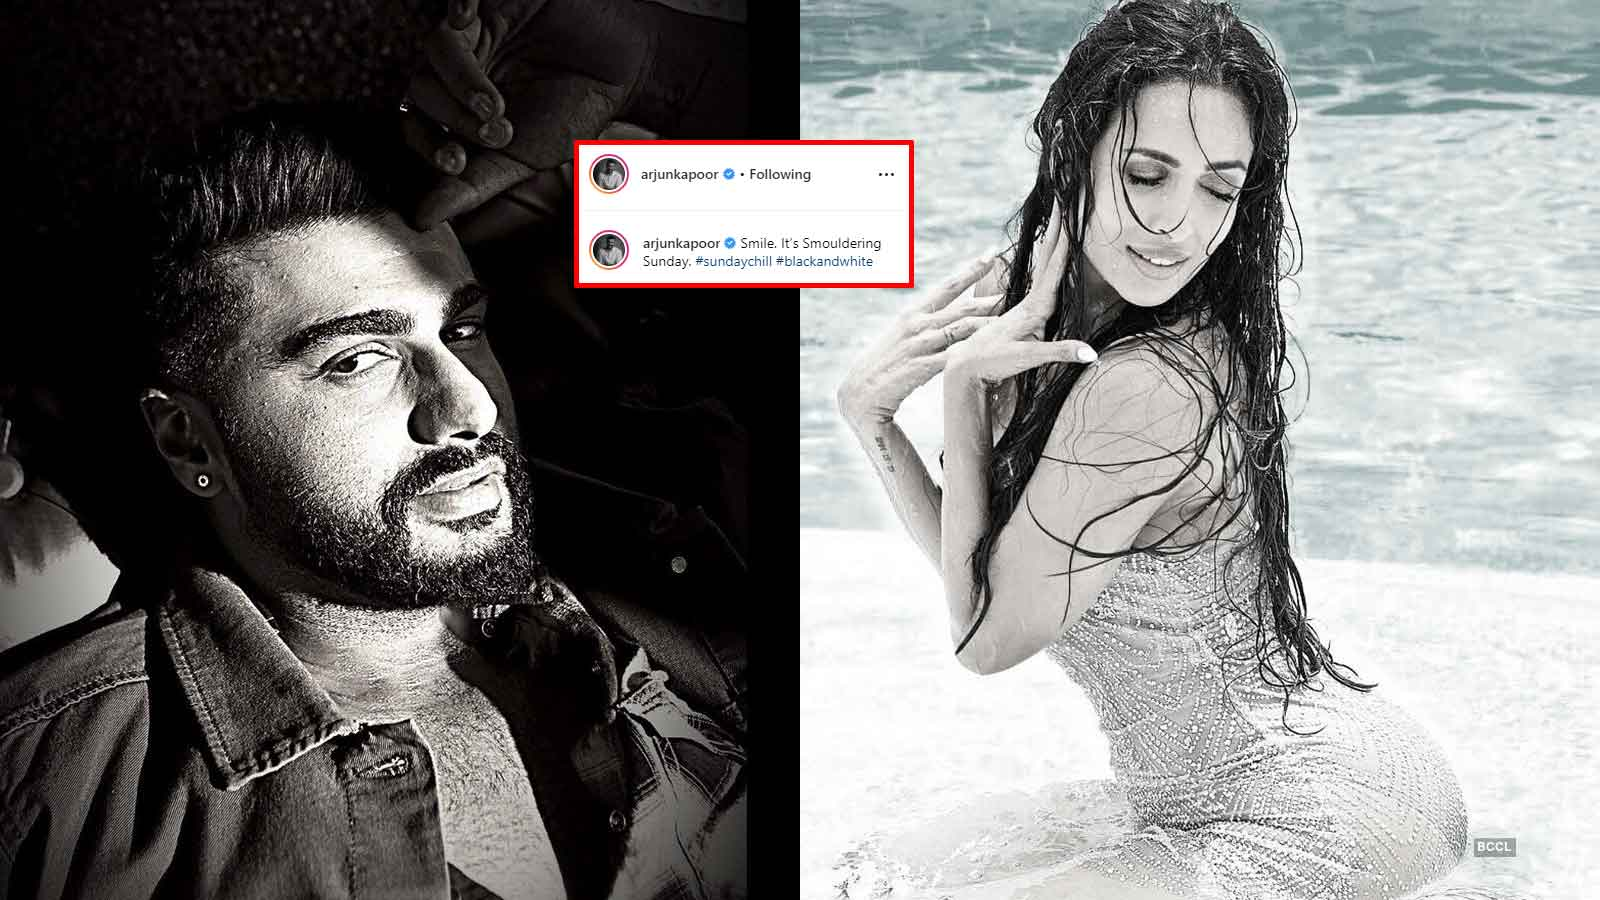 check-out-malaika-aroras-comment-on-beau-arjun-kapoors-latest-instagram-post